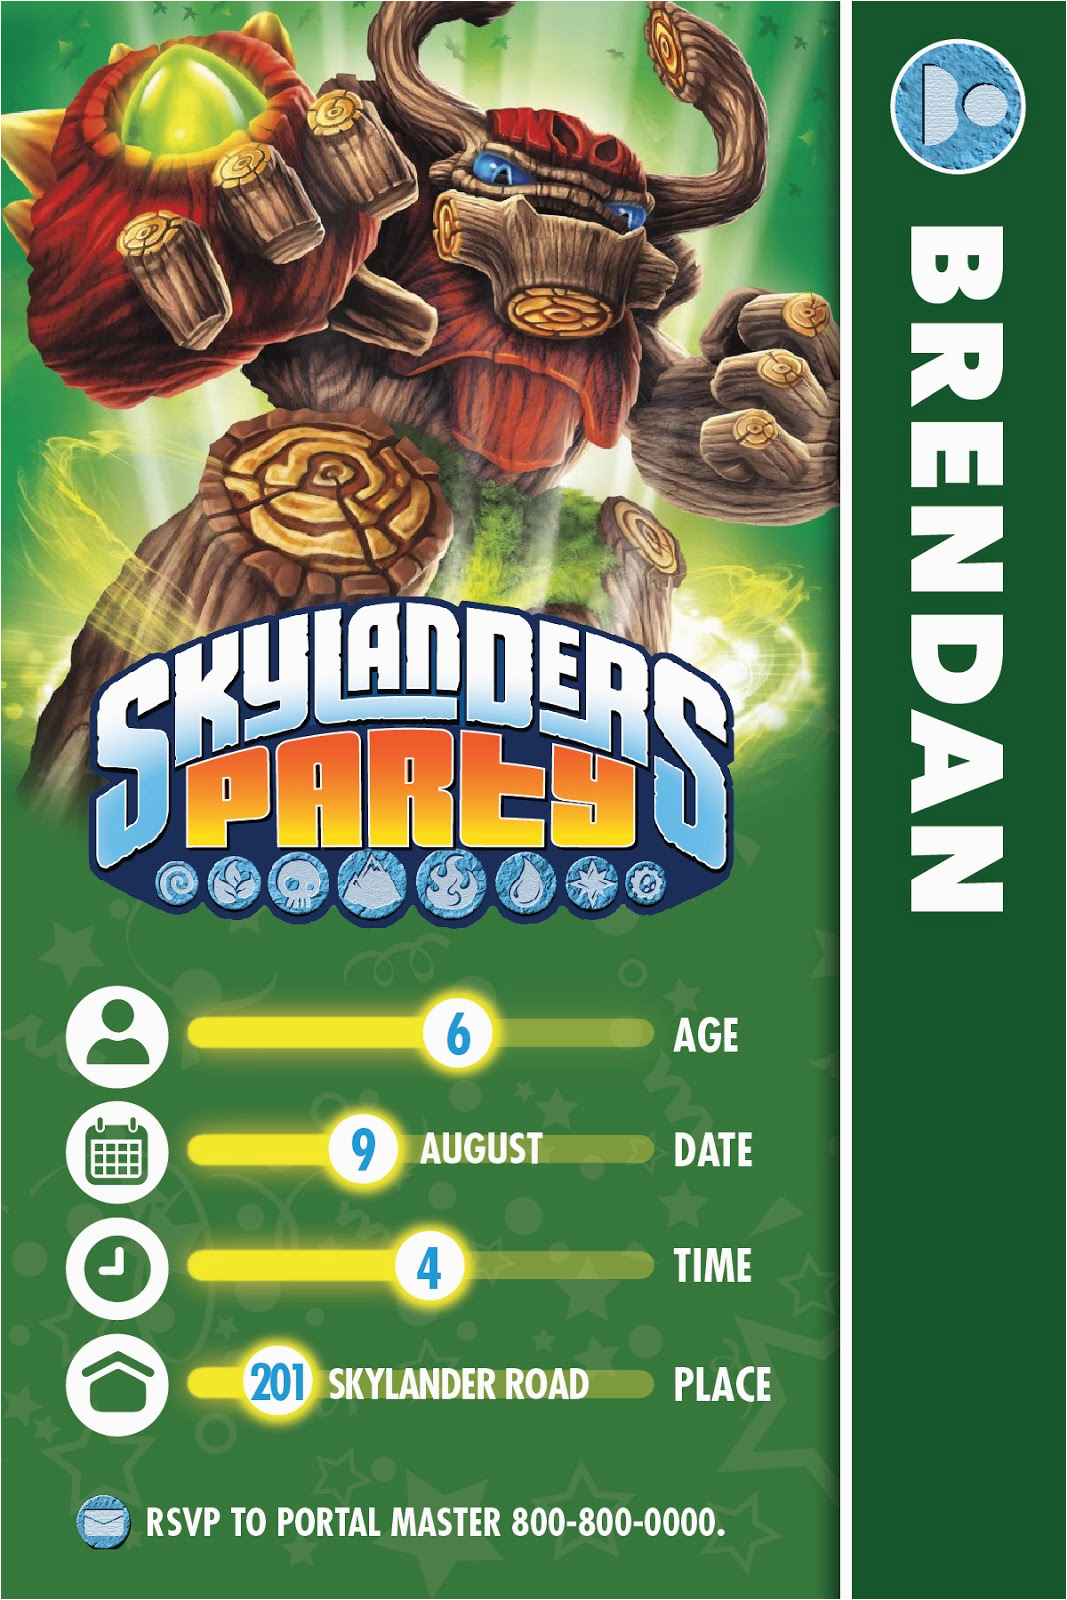 Skylanders Birthday Party Invitations | Birthdaybuzz - Free Printable Skylander Invitations